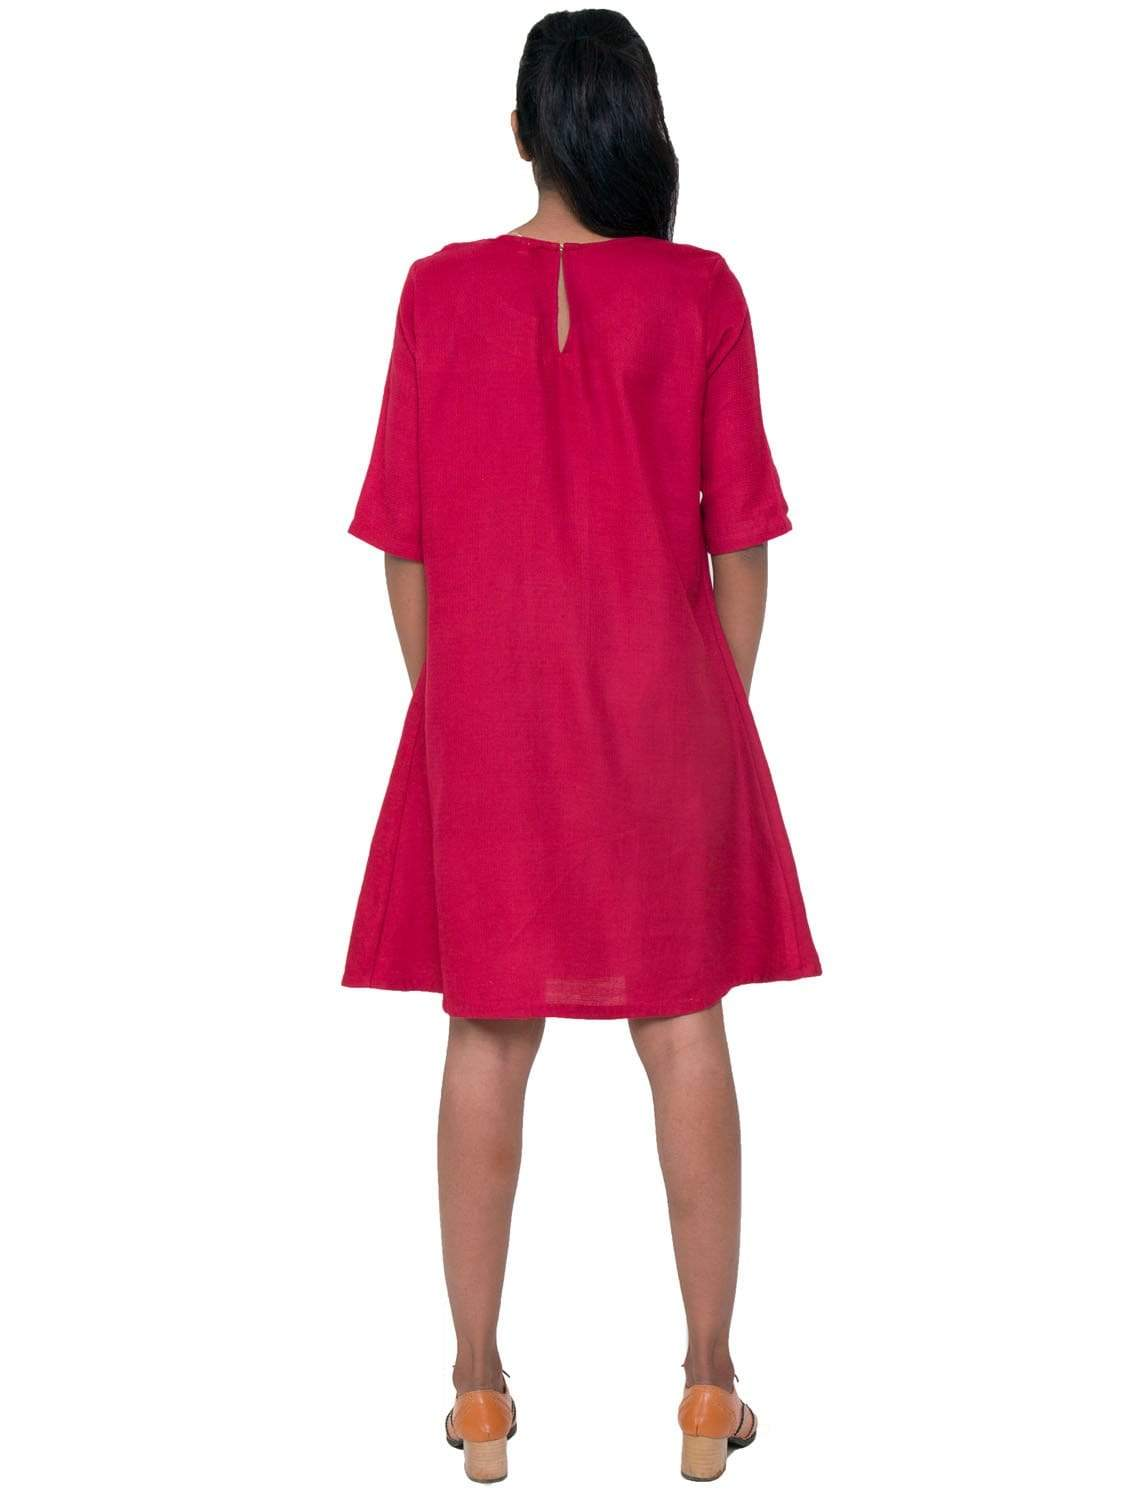 Magenta PikaLove Organic Cotton Skater Dress UNC-MB-SD-002